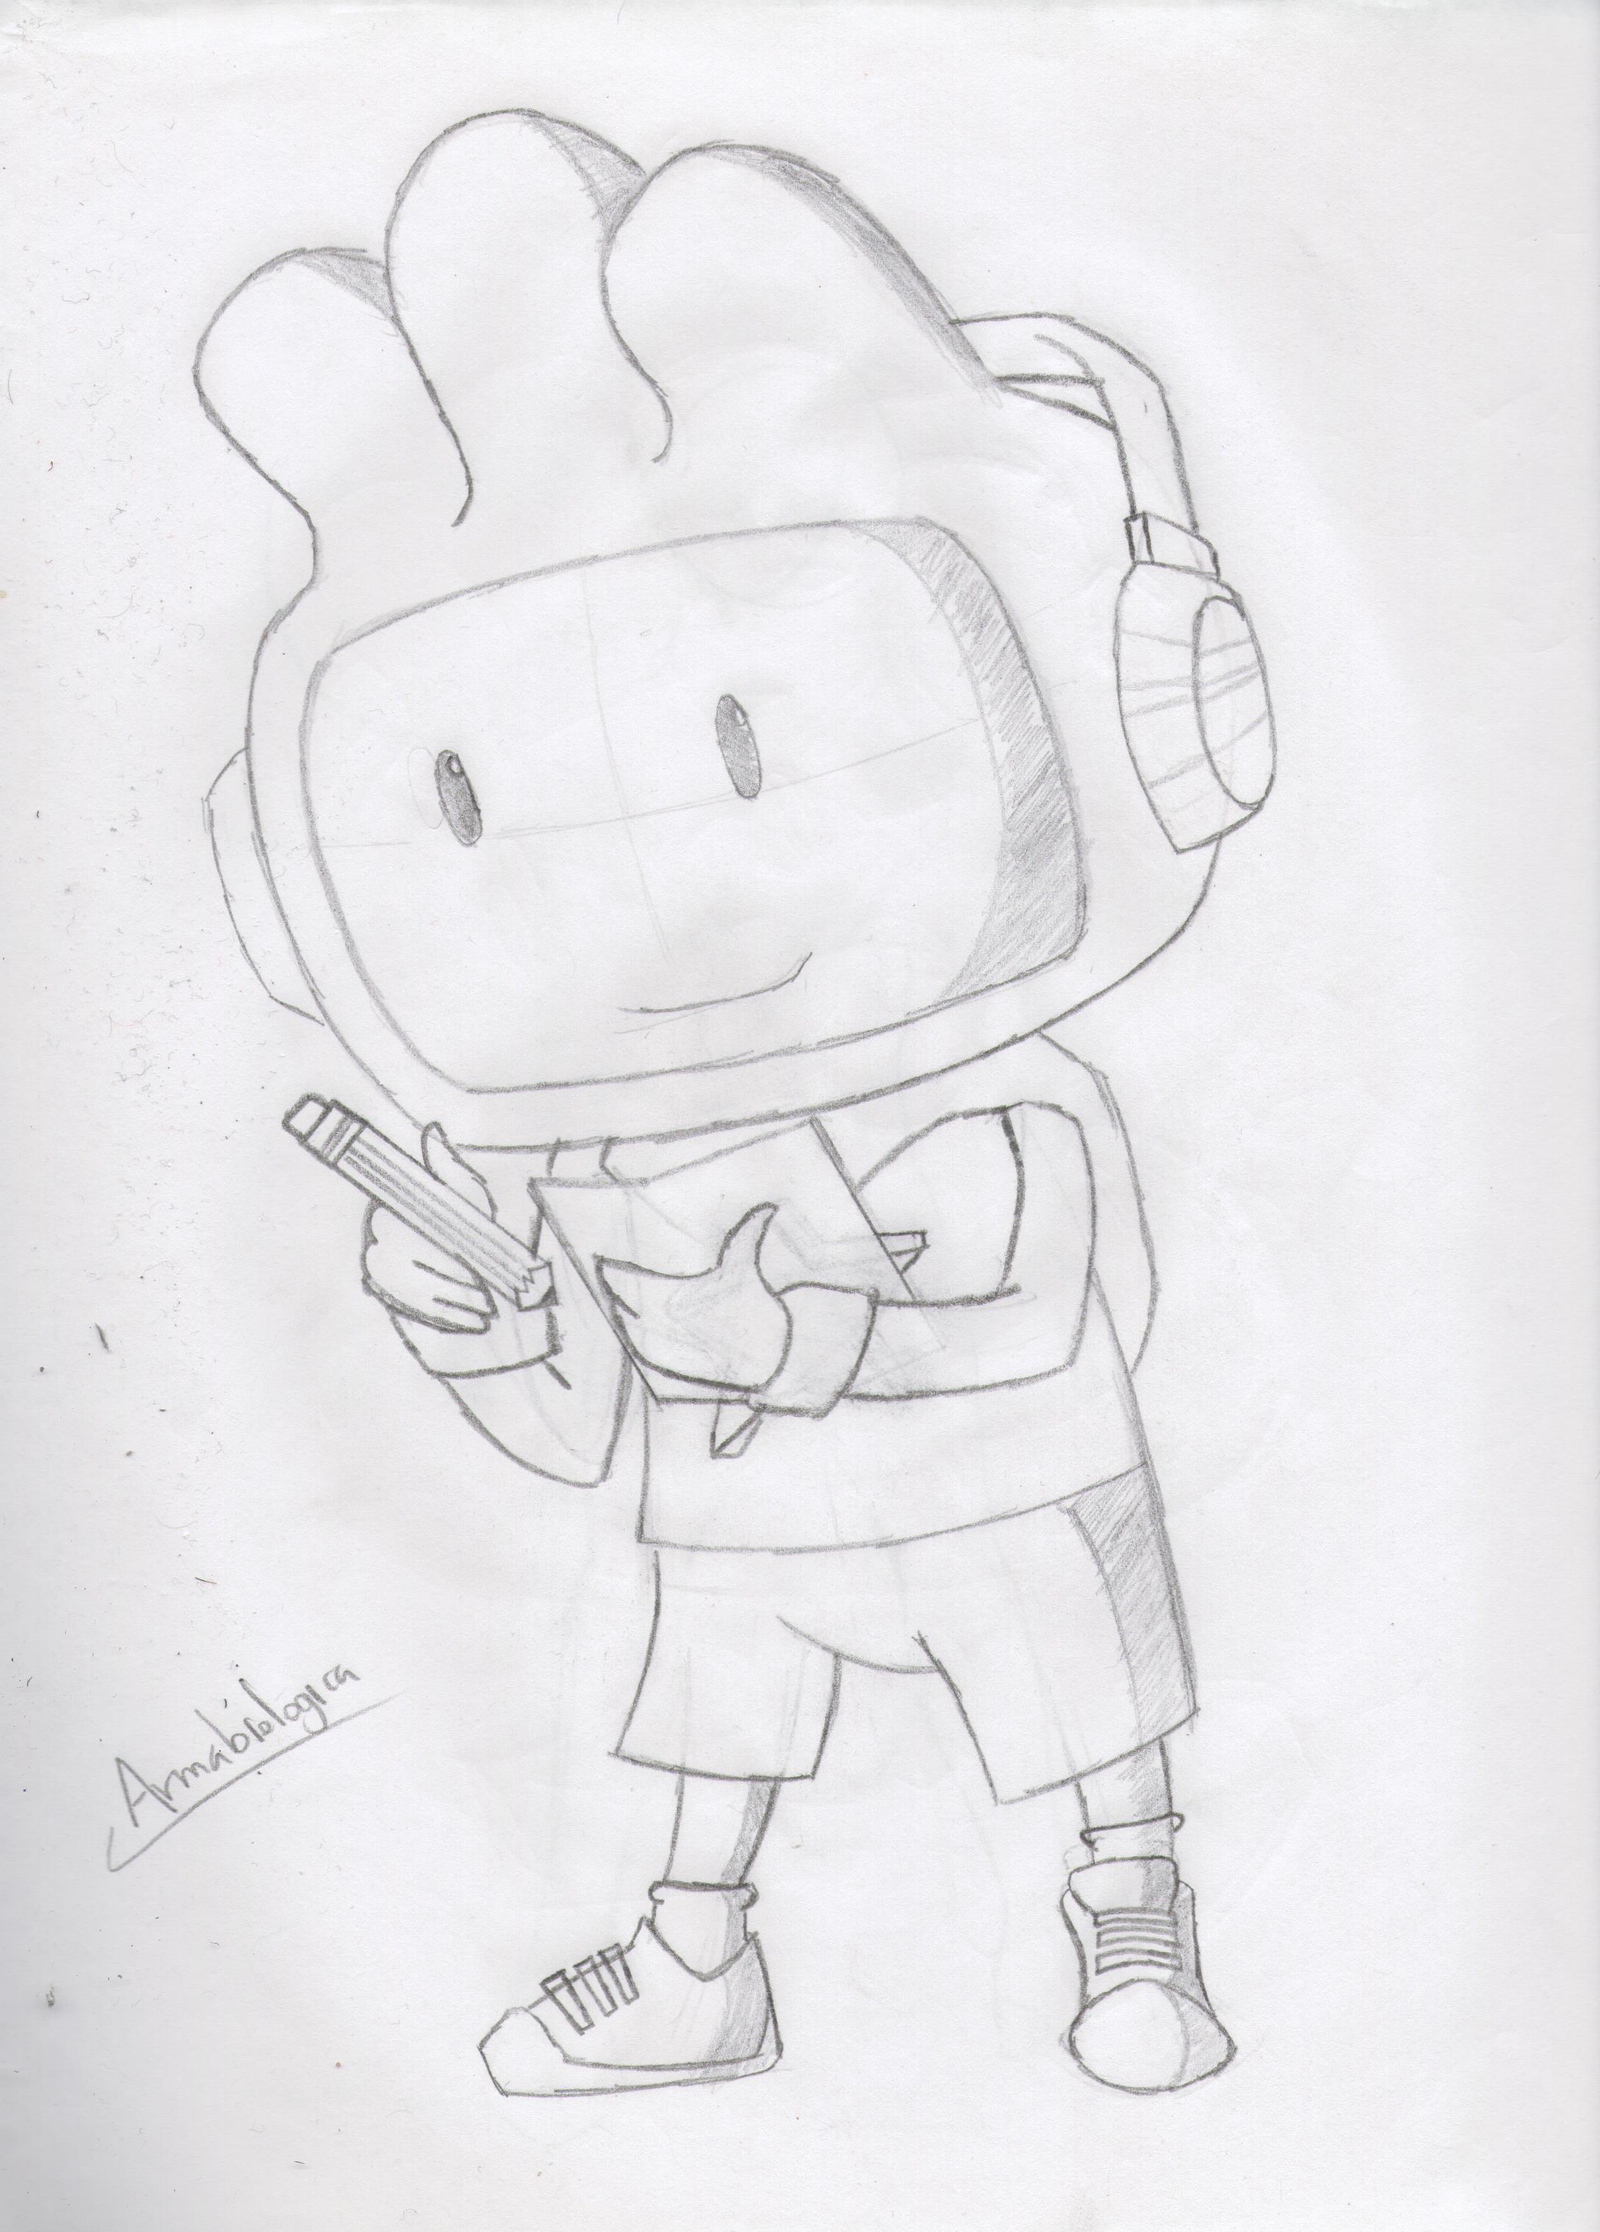 Maxwell Scribblenauts Drawing : Maxwell sketch by armabiologica on deviantart